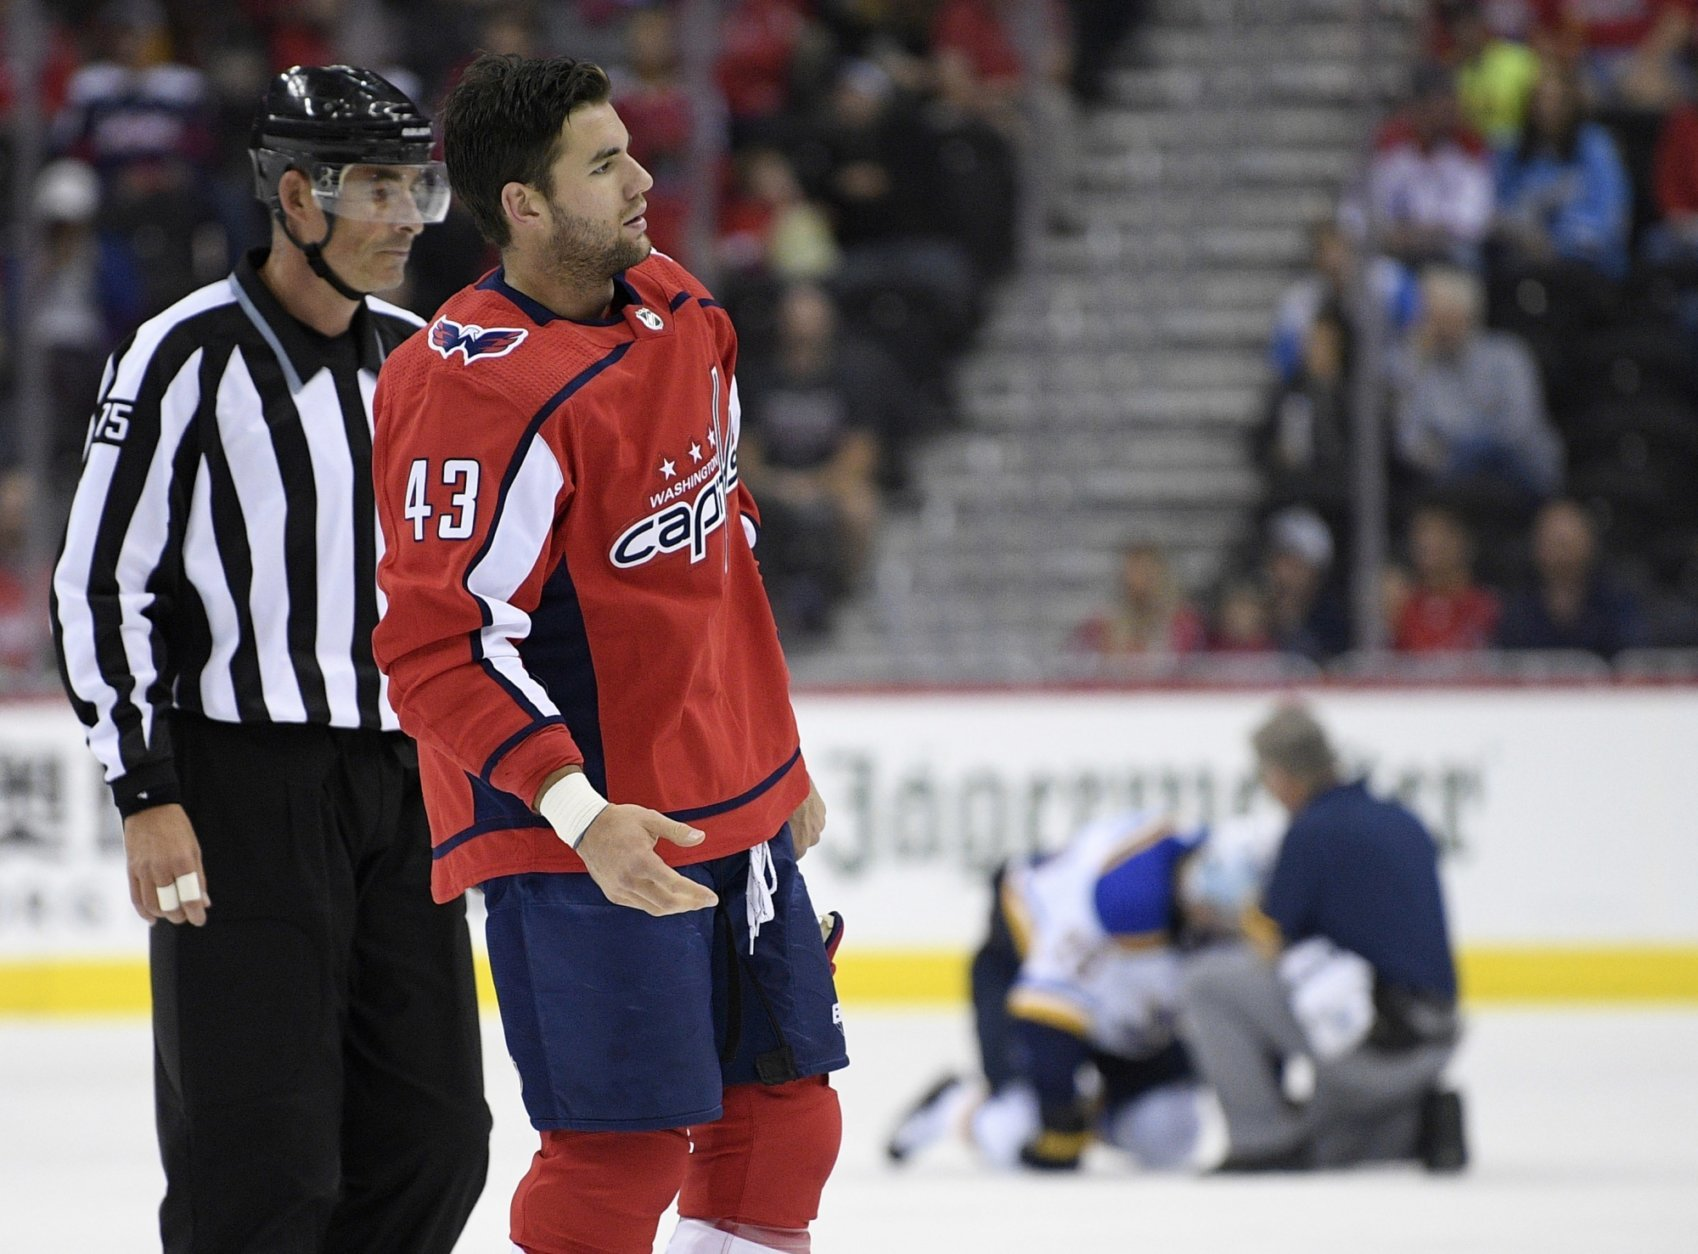 FILE - In this Sept. 30, 2018, file photo, Washington Capitals right wing Tom Wilson (43) is escorted by an official off the ice after he checked St. Louis Blues center Oskar Sundqvist, on ice at back center, during the second period of an NHL preseason hockey game, in Washington. Wilson has been suspended 20 games by the NHL for a blindside hit to the head of an opponent during a preseason game. Wilson's punishment was announced Wednesday, Oct. 3, 2018, just hours before the reigning Stanley Cup champion Capitals were to raise their banner and open their title defense by hosting the Boston Bruins to begin the regular season. (AP Photo/Nick Wass, File)